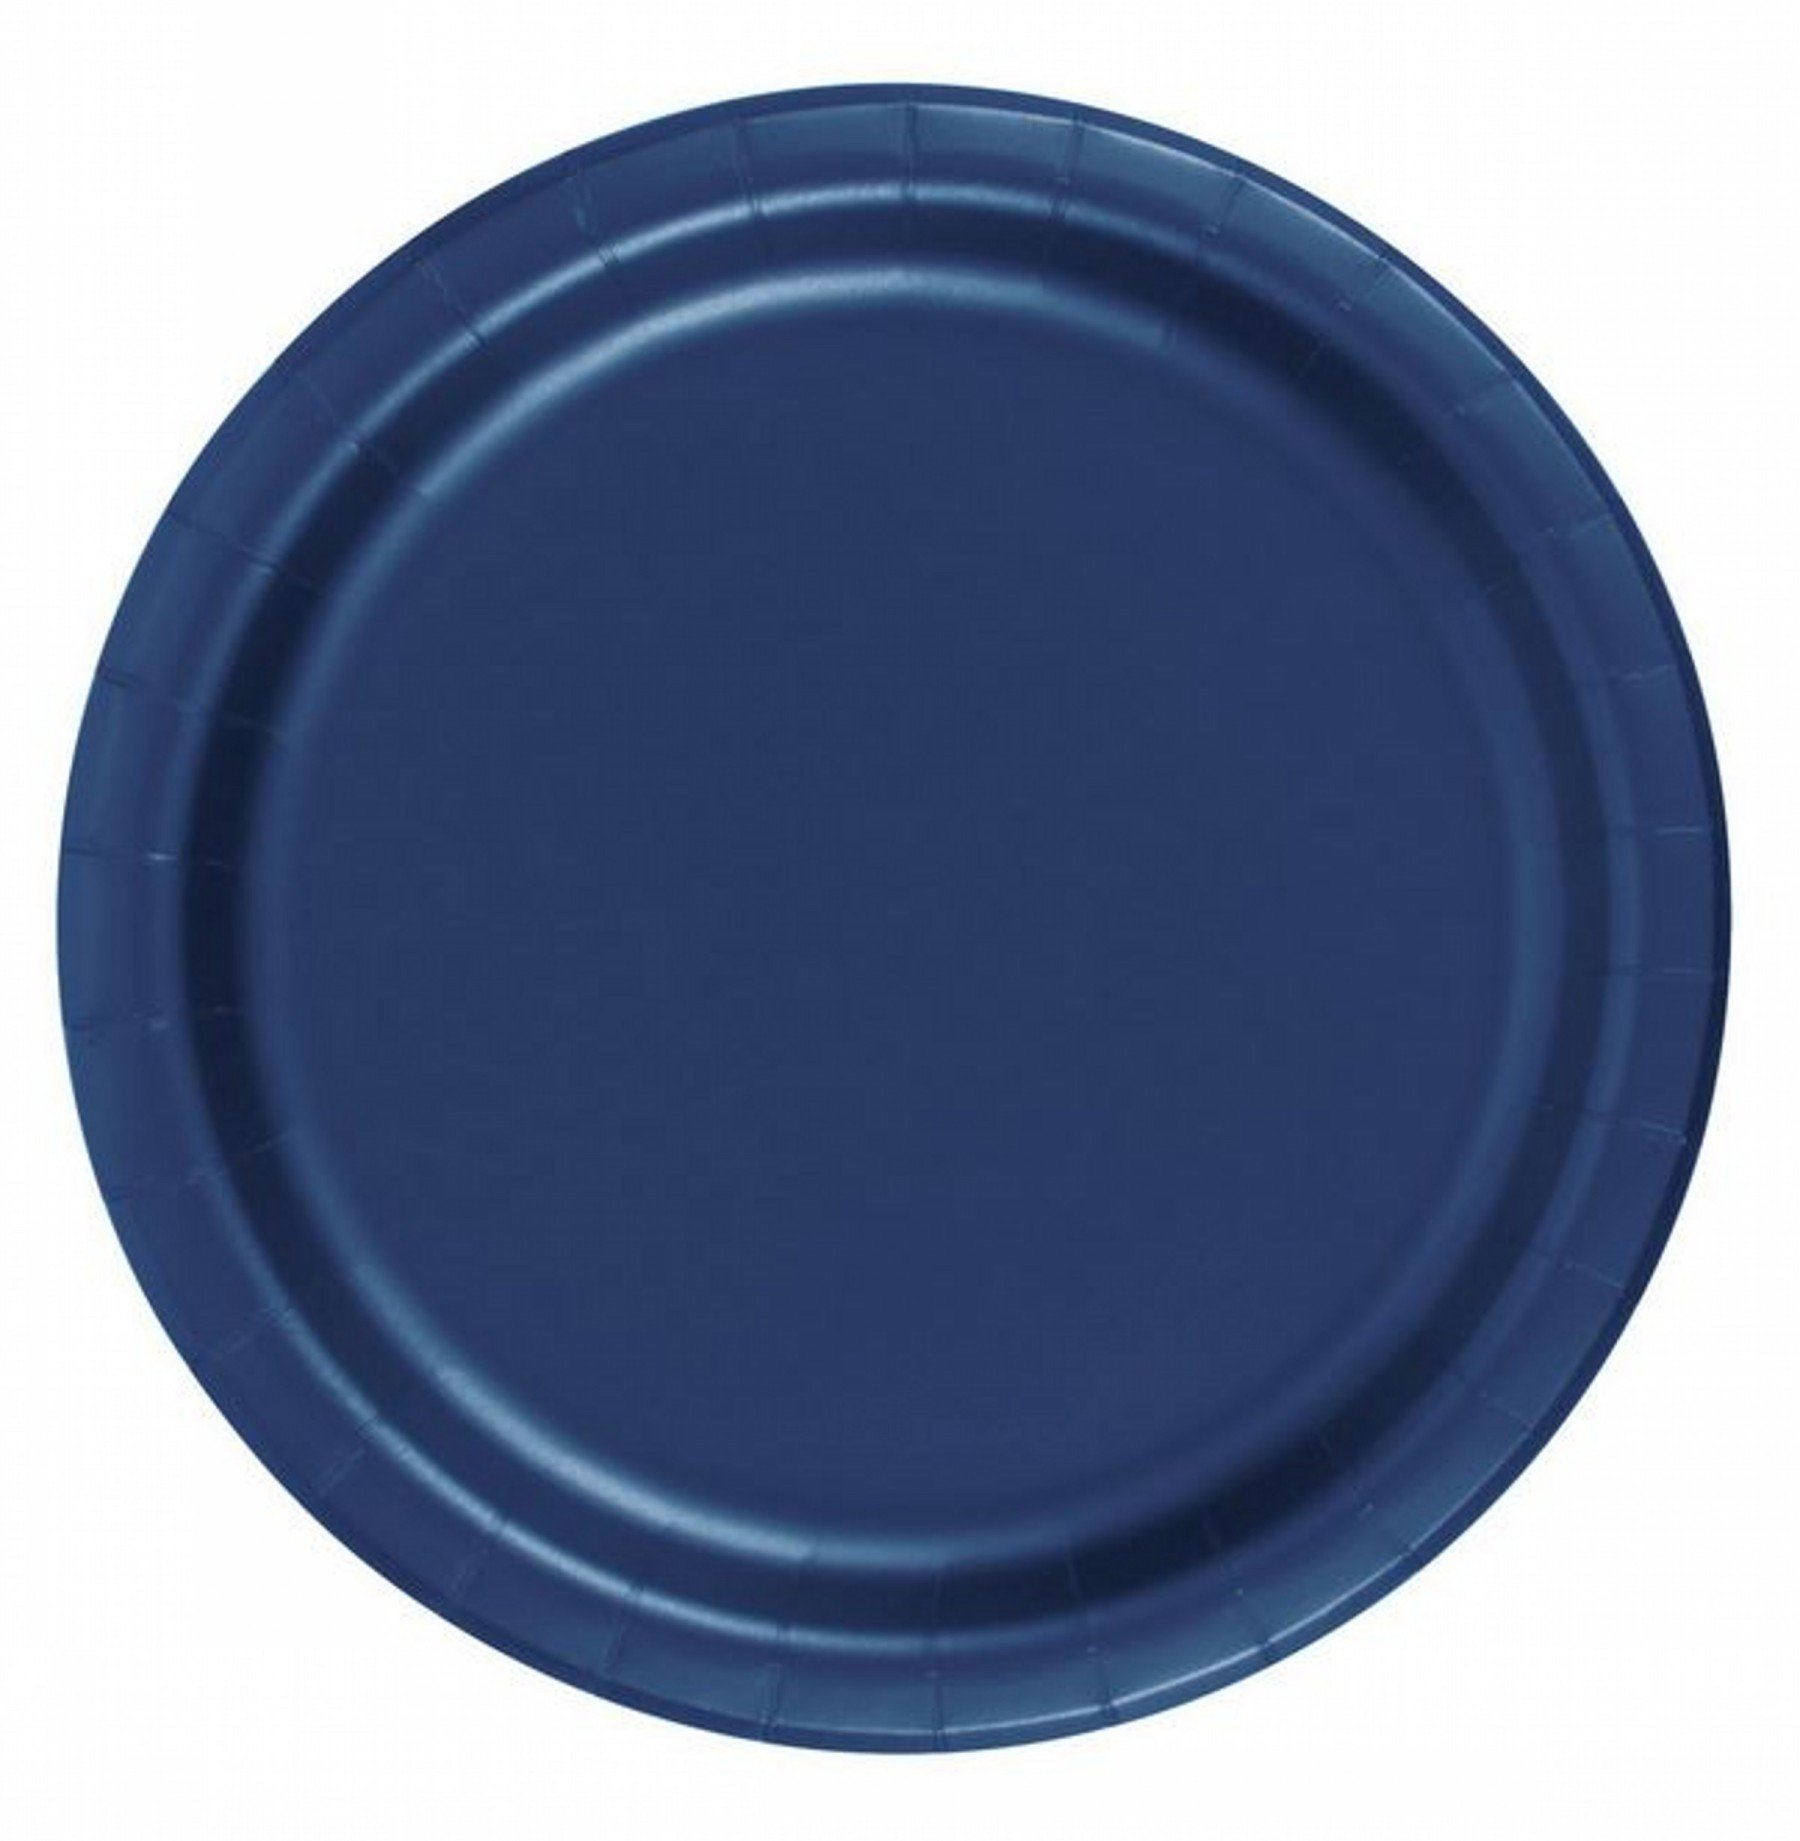 240 Navy Blue (10 Pks of 24) 7 Inch Wax Coated Plain Solid Color Dessert Cake Paper Plates